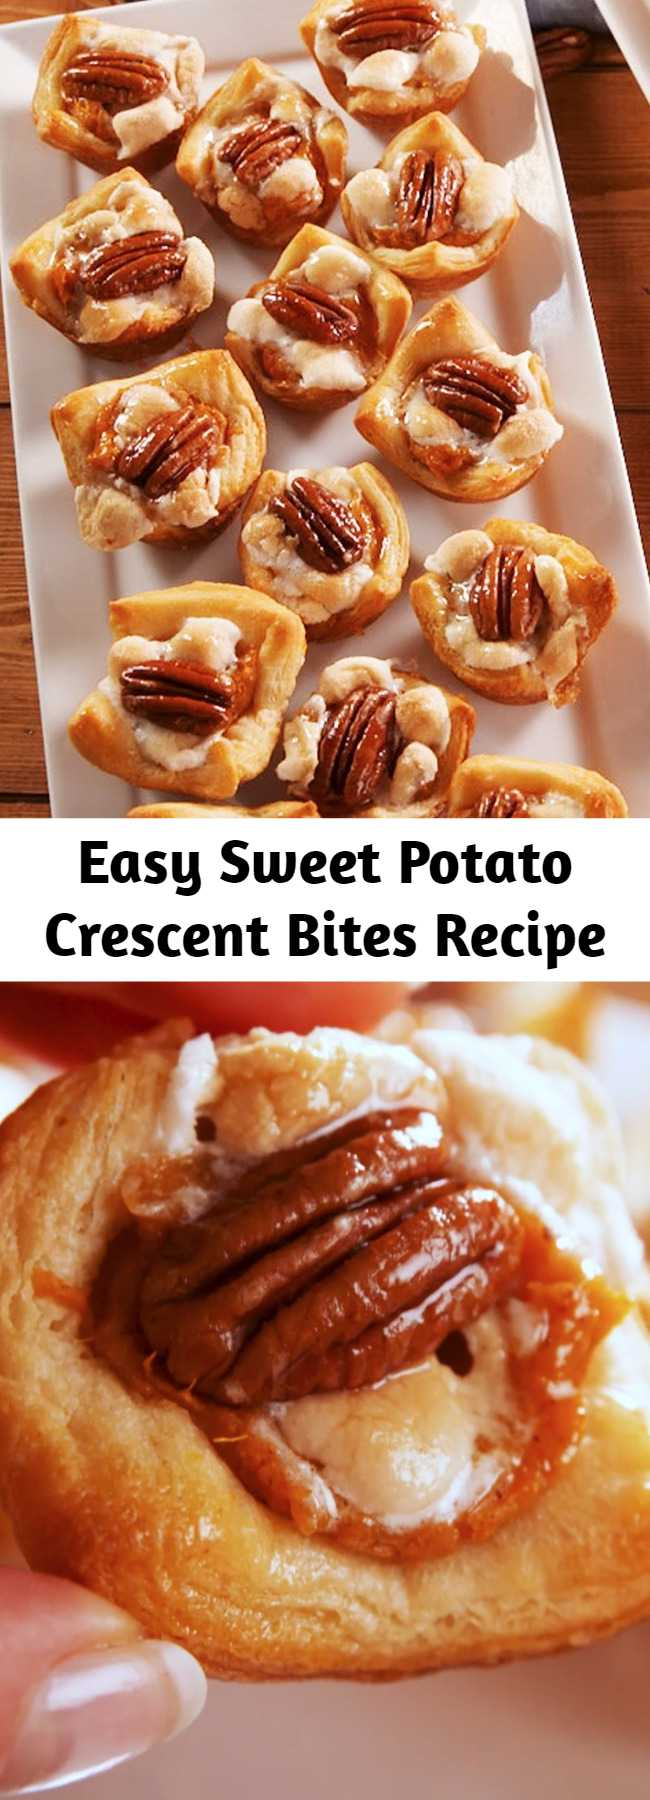 Easy Sweet Potato Crescent Bites Recipe - A guarantee: You will NOT be able to stop eating these little guys. They're the perfect amount of sweet and savory, so you can serve them before or after the big meal! Sweet Potato Crescent Bites from Delish.com are a great appetizer for this Thanksgiving. #easy #recipe #thanksgiving #holiday #app #appetizer #fingerfoods #Pecan #crescentrolls #sweetpotato #potato #marshmallows #minimarshmallows #quick